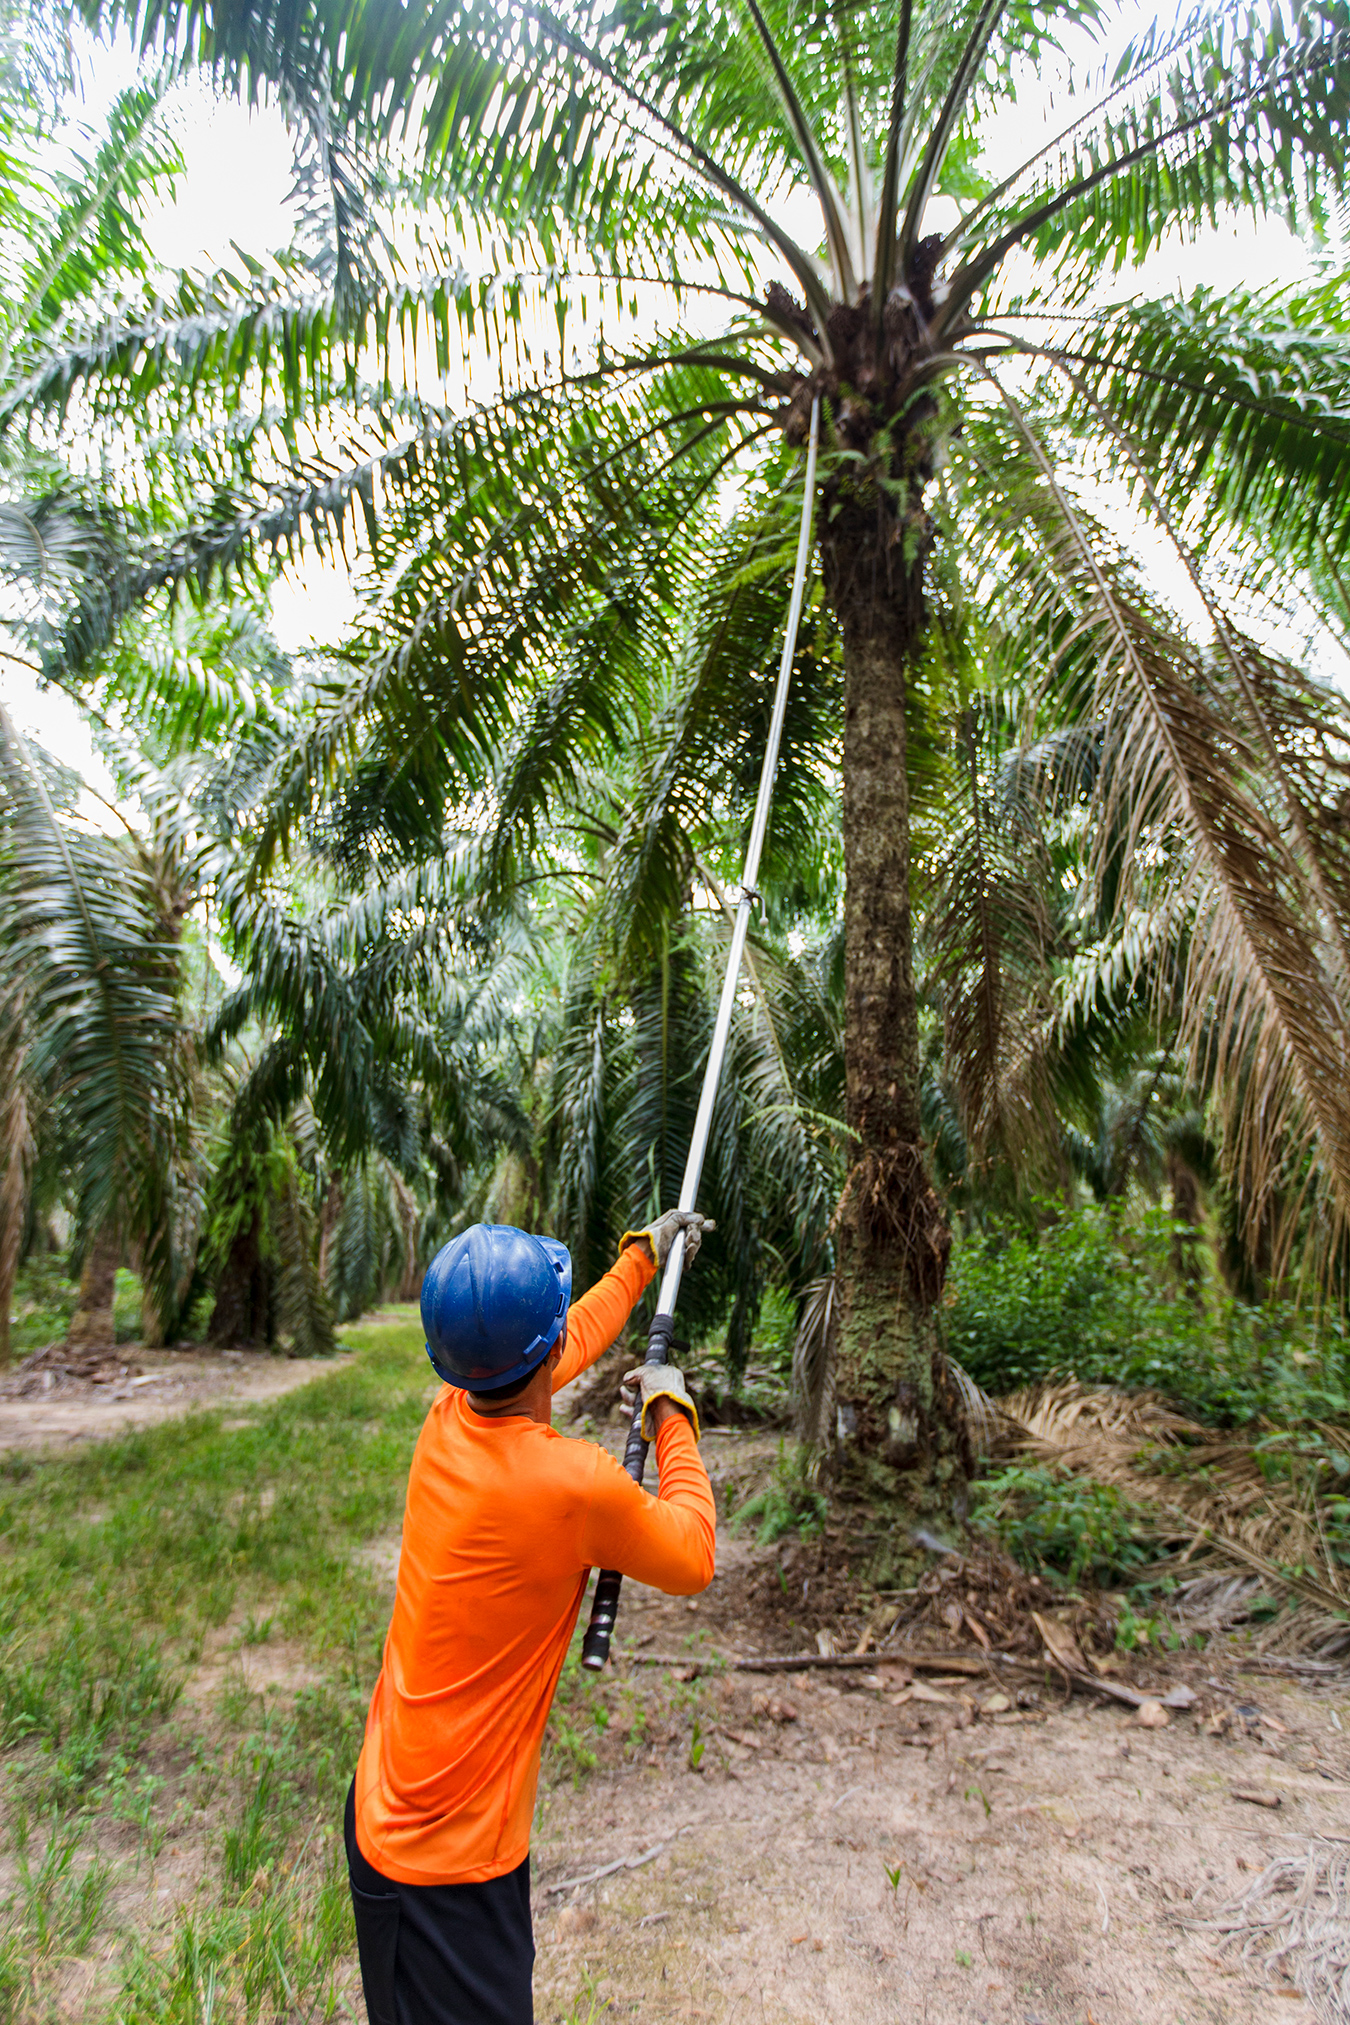 Partnership Between Agropalma (Brazil) and Ciranda (U.S.) Expands Availability of Organic Palm Oil in North America to Meet Growing Demand